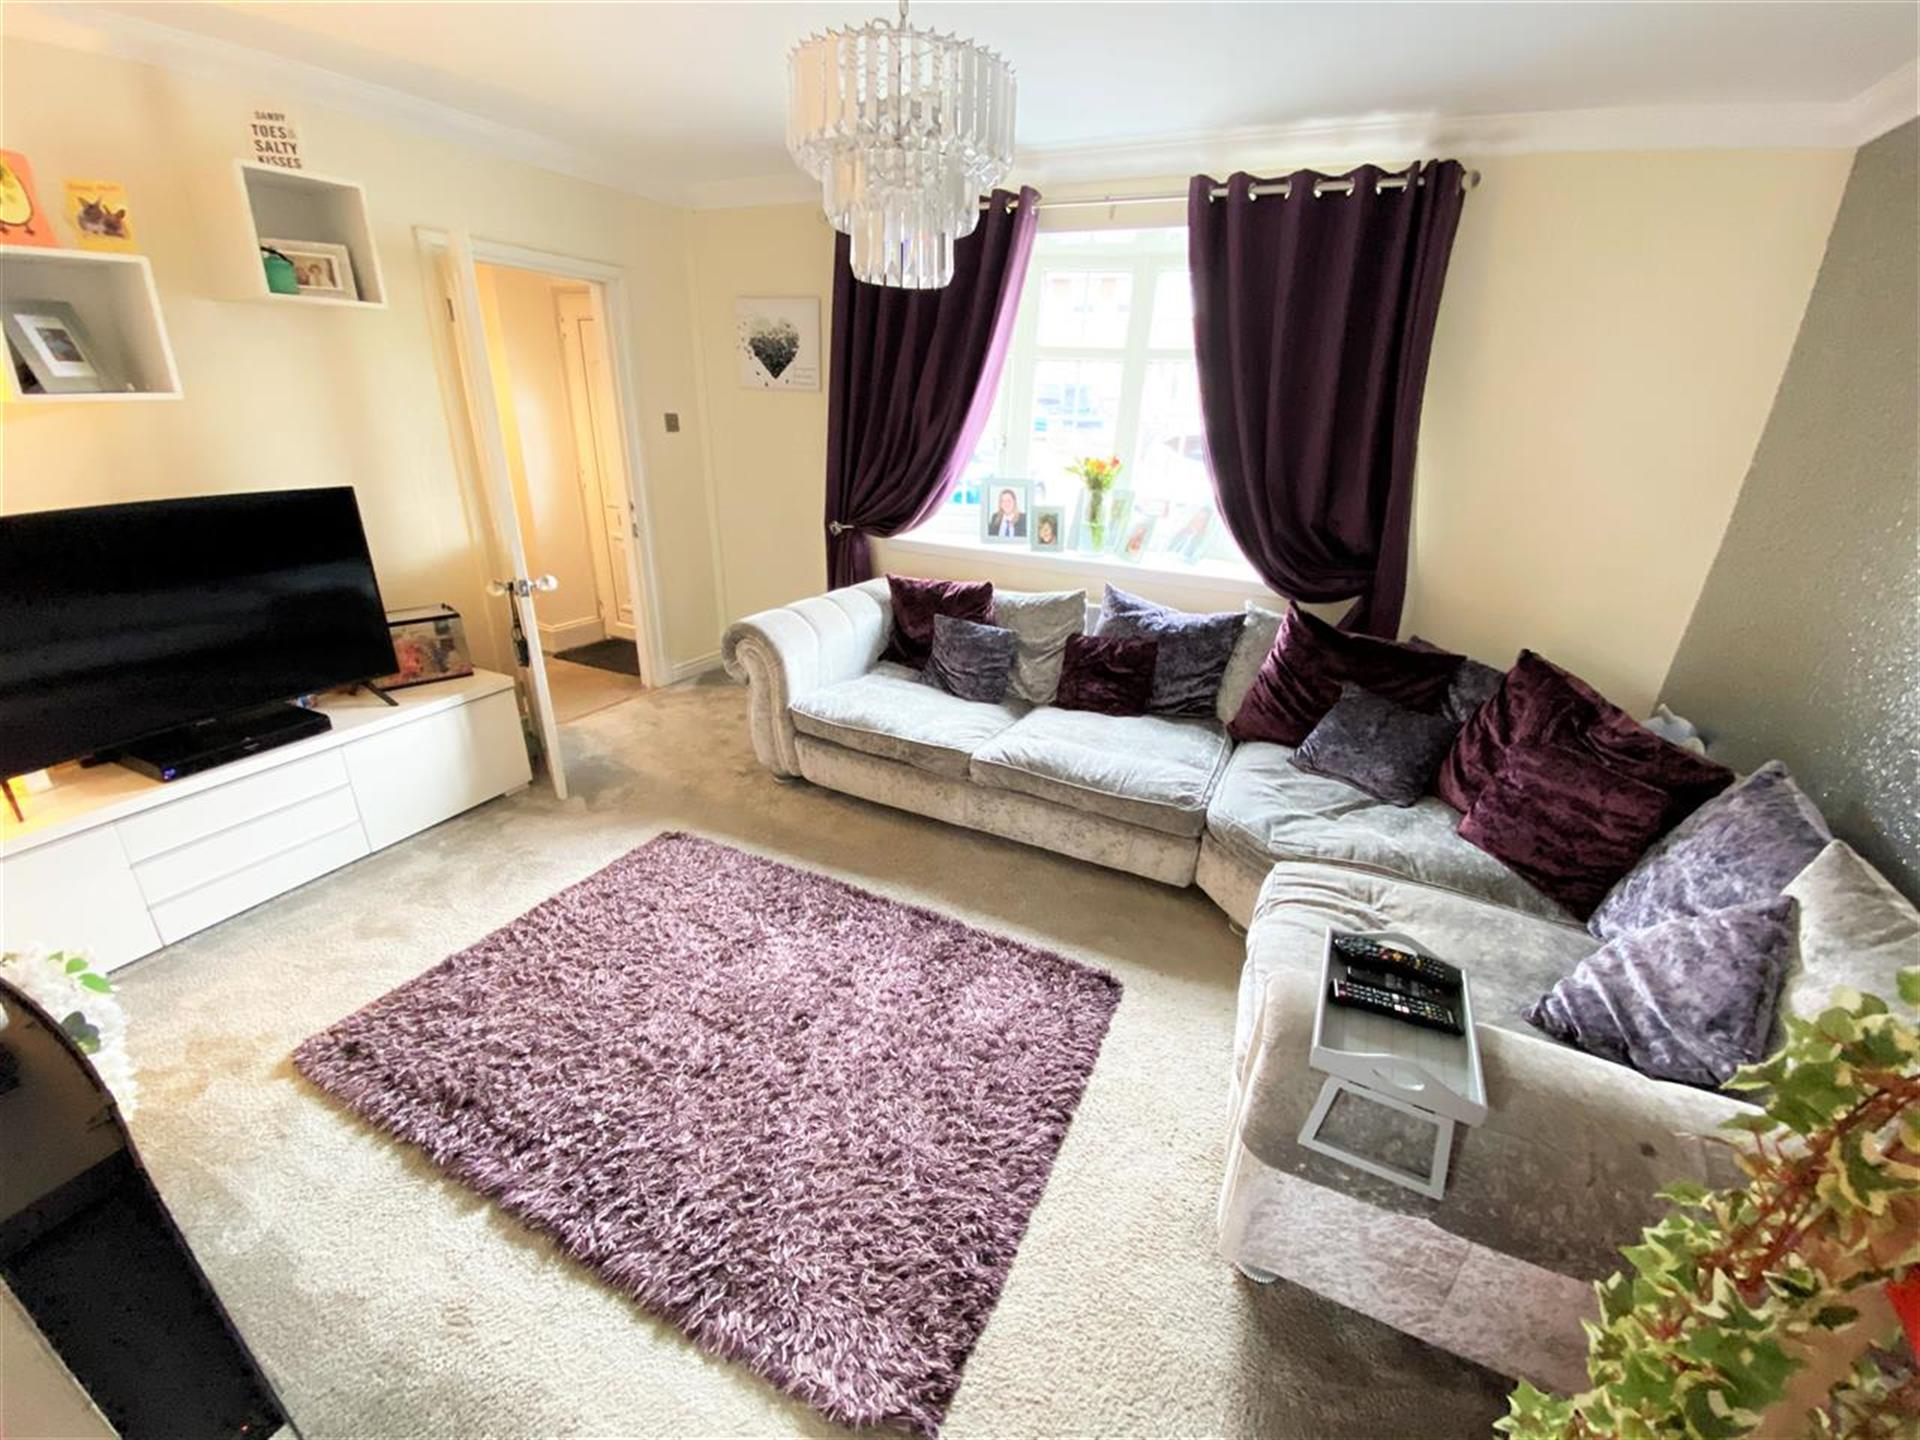 4 Bedroom Terraced House For Sale - Lounge